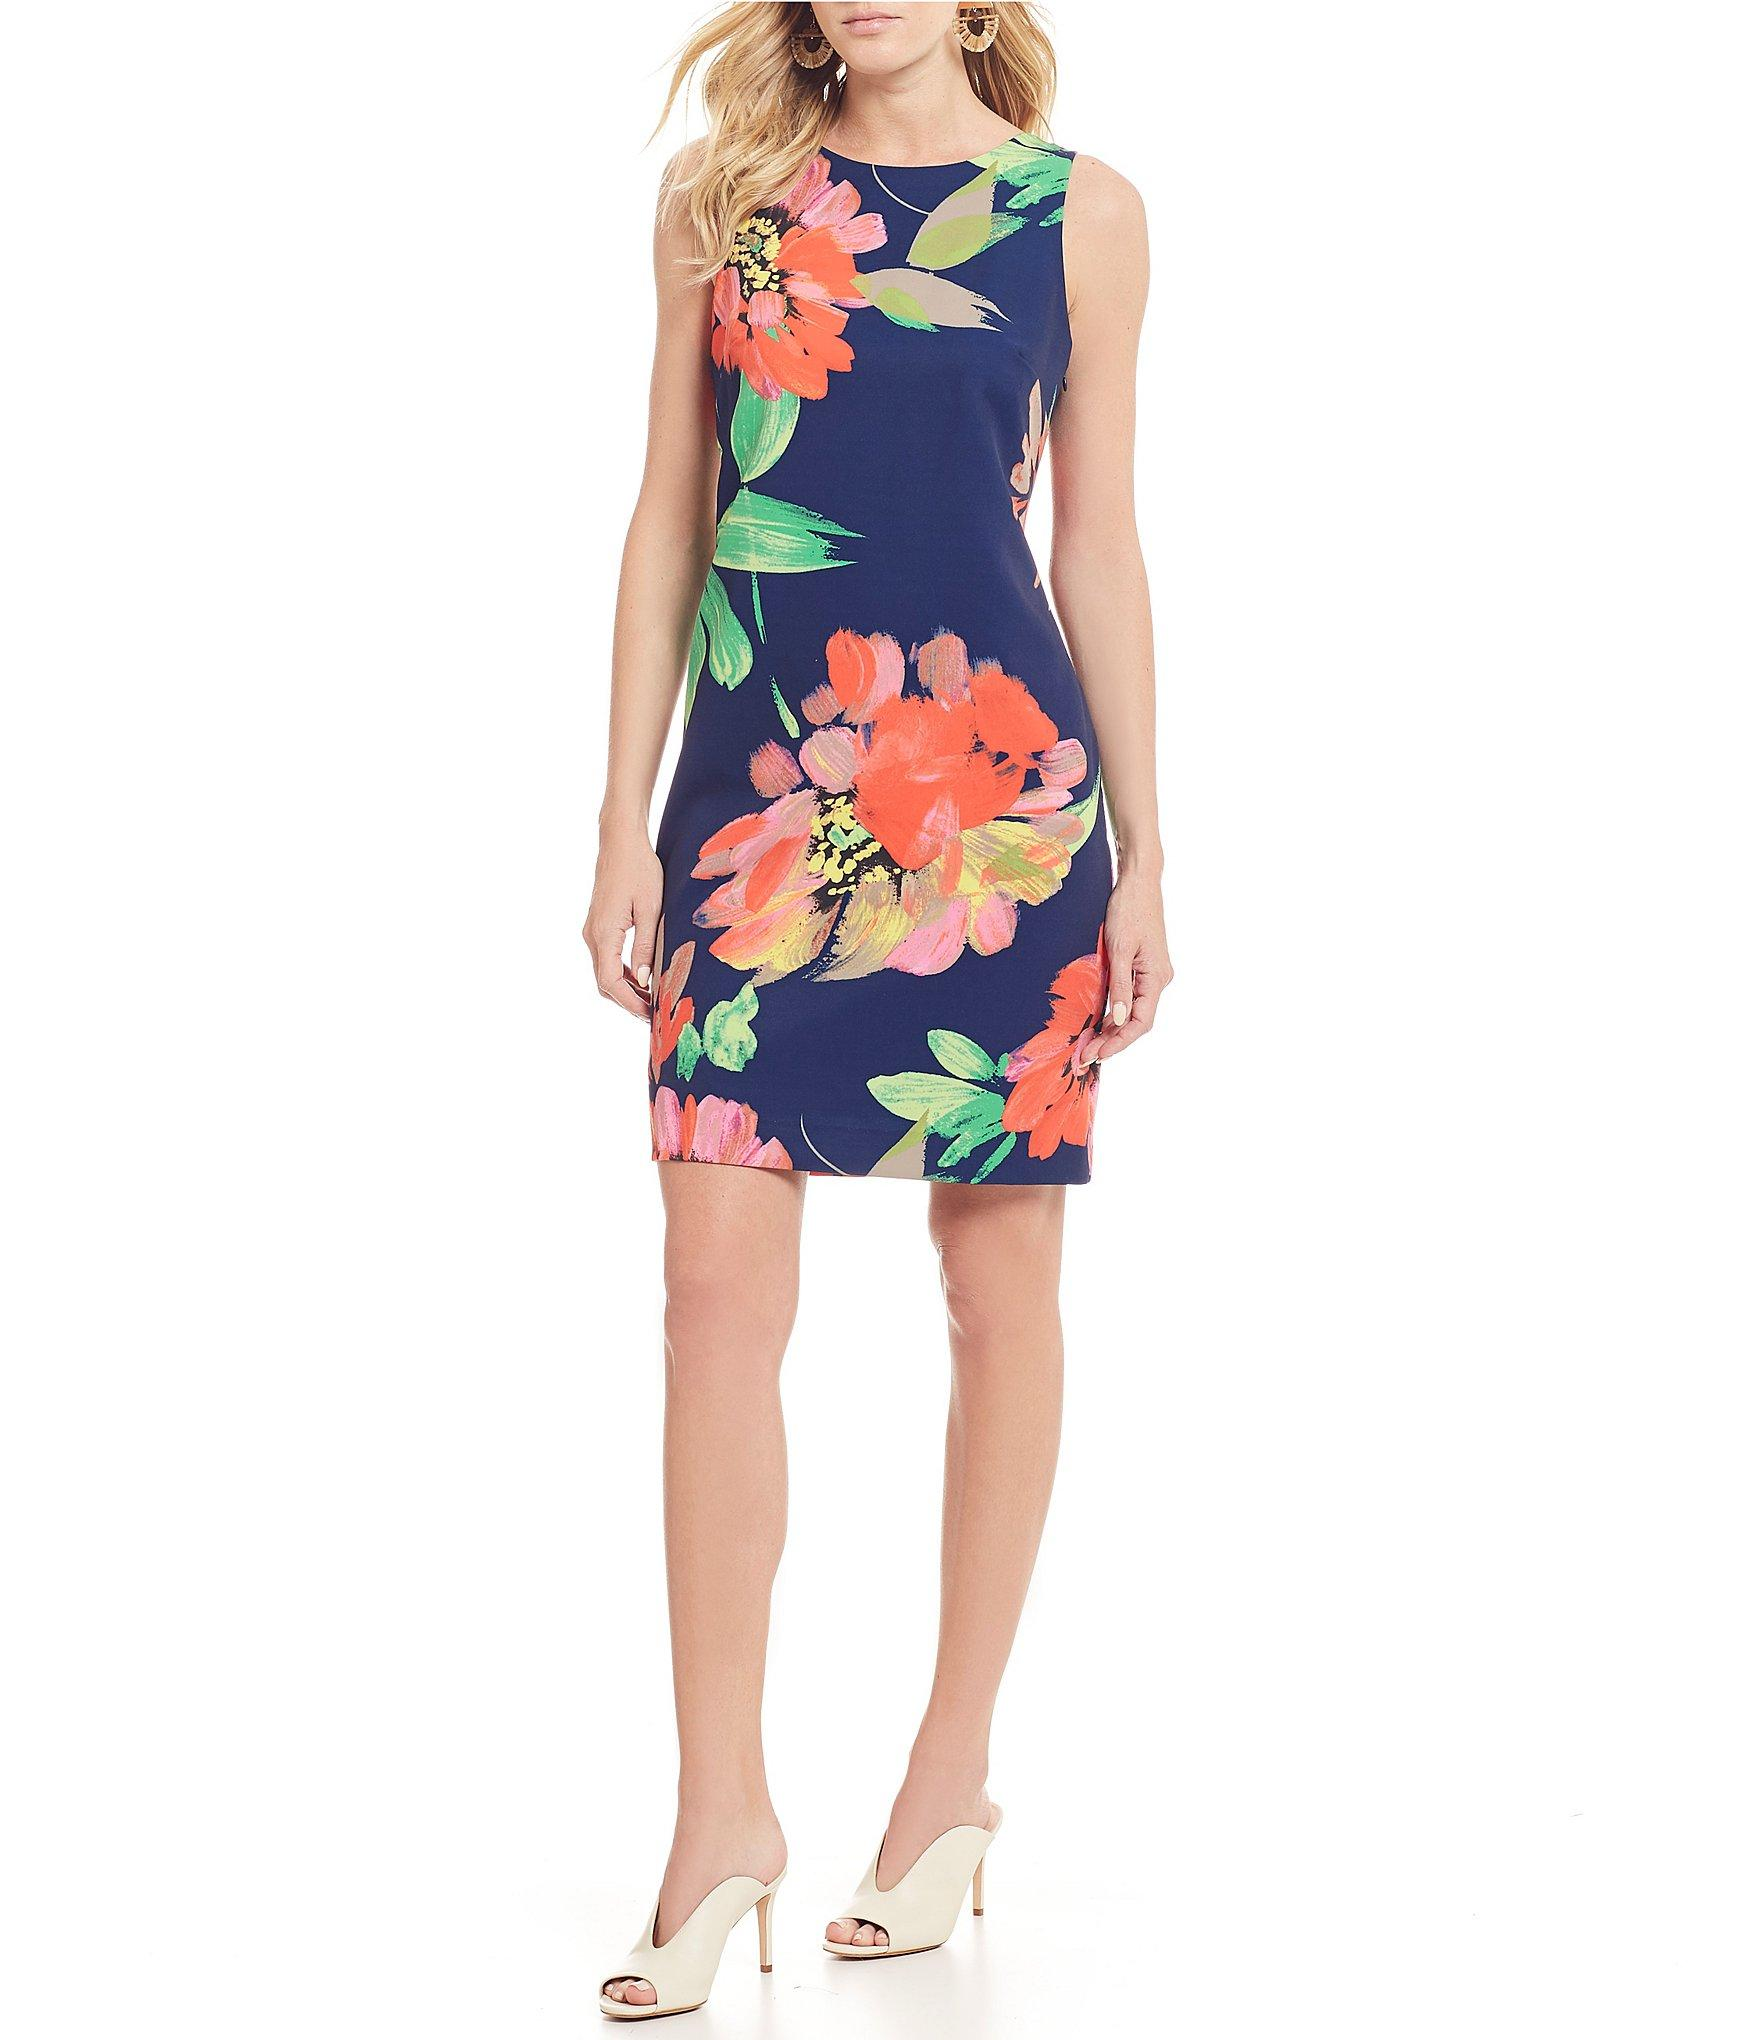 d6d3a4256a Lyst - Trina Turk Clemente Floral Print Bow Detail Sheath Dress in Blue